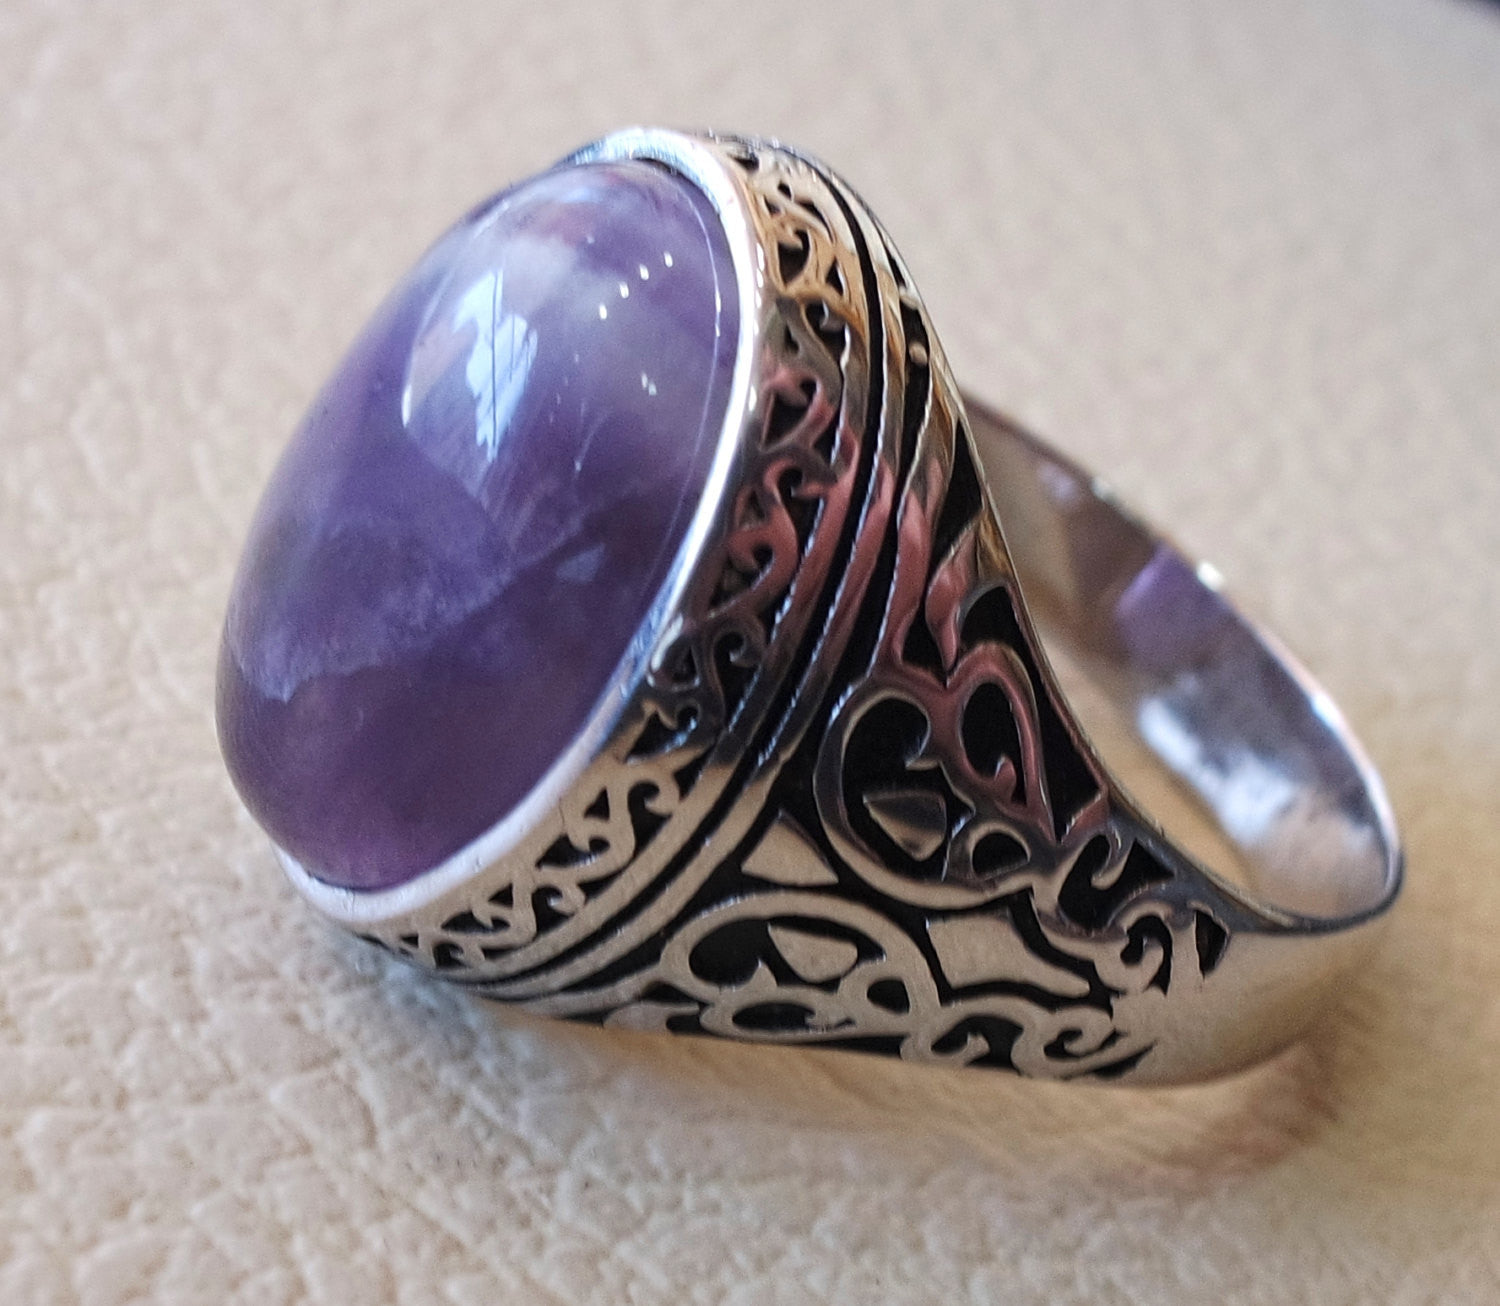 amethyst agate natural purple stone sterling silver 925 man ring vintage arabic turkish ottoman style jewelry oval  gem all sizes express